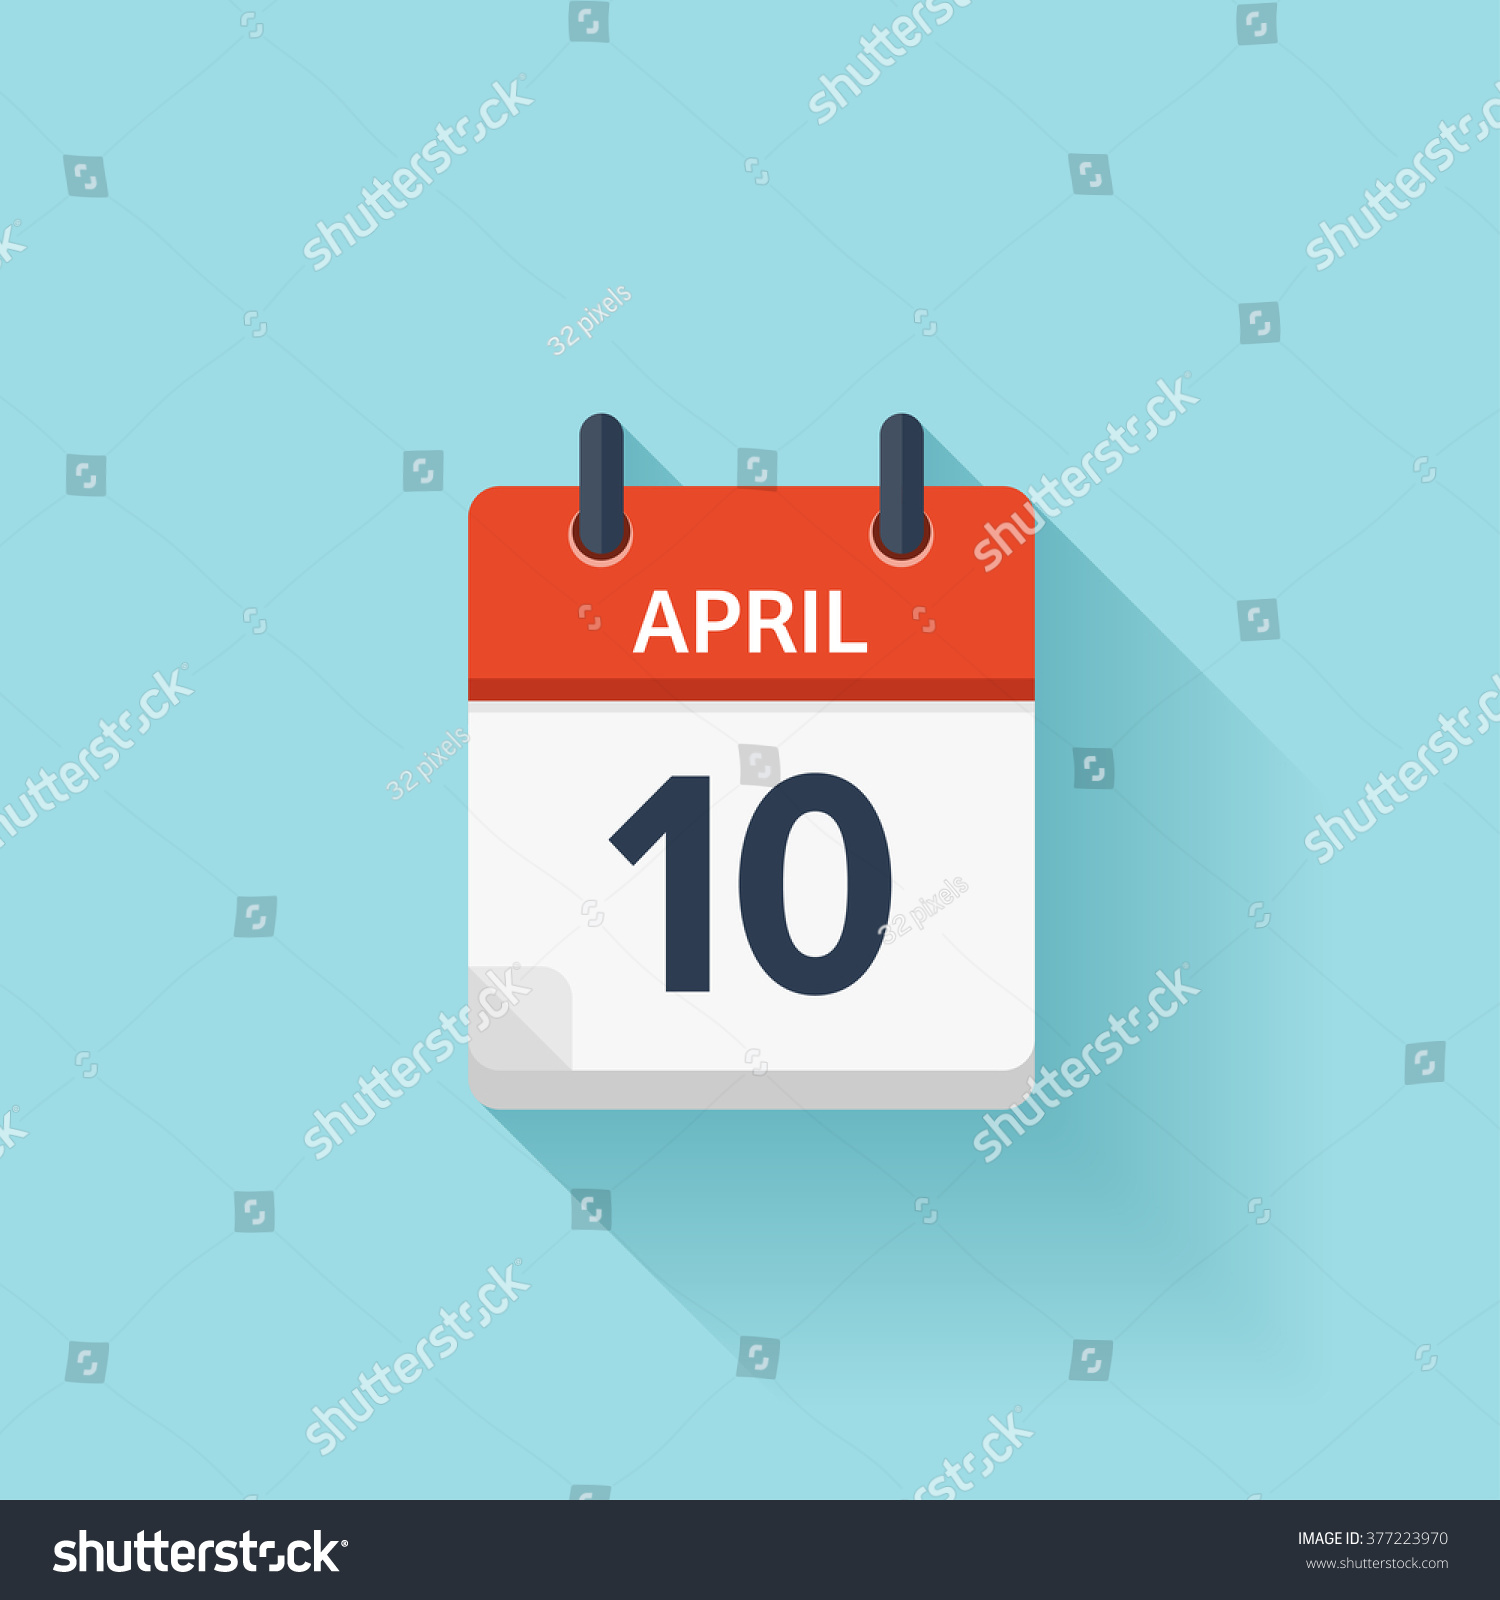 Calendar Illustration Vector : April calendar iconvector illustrationflat styledateday